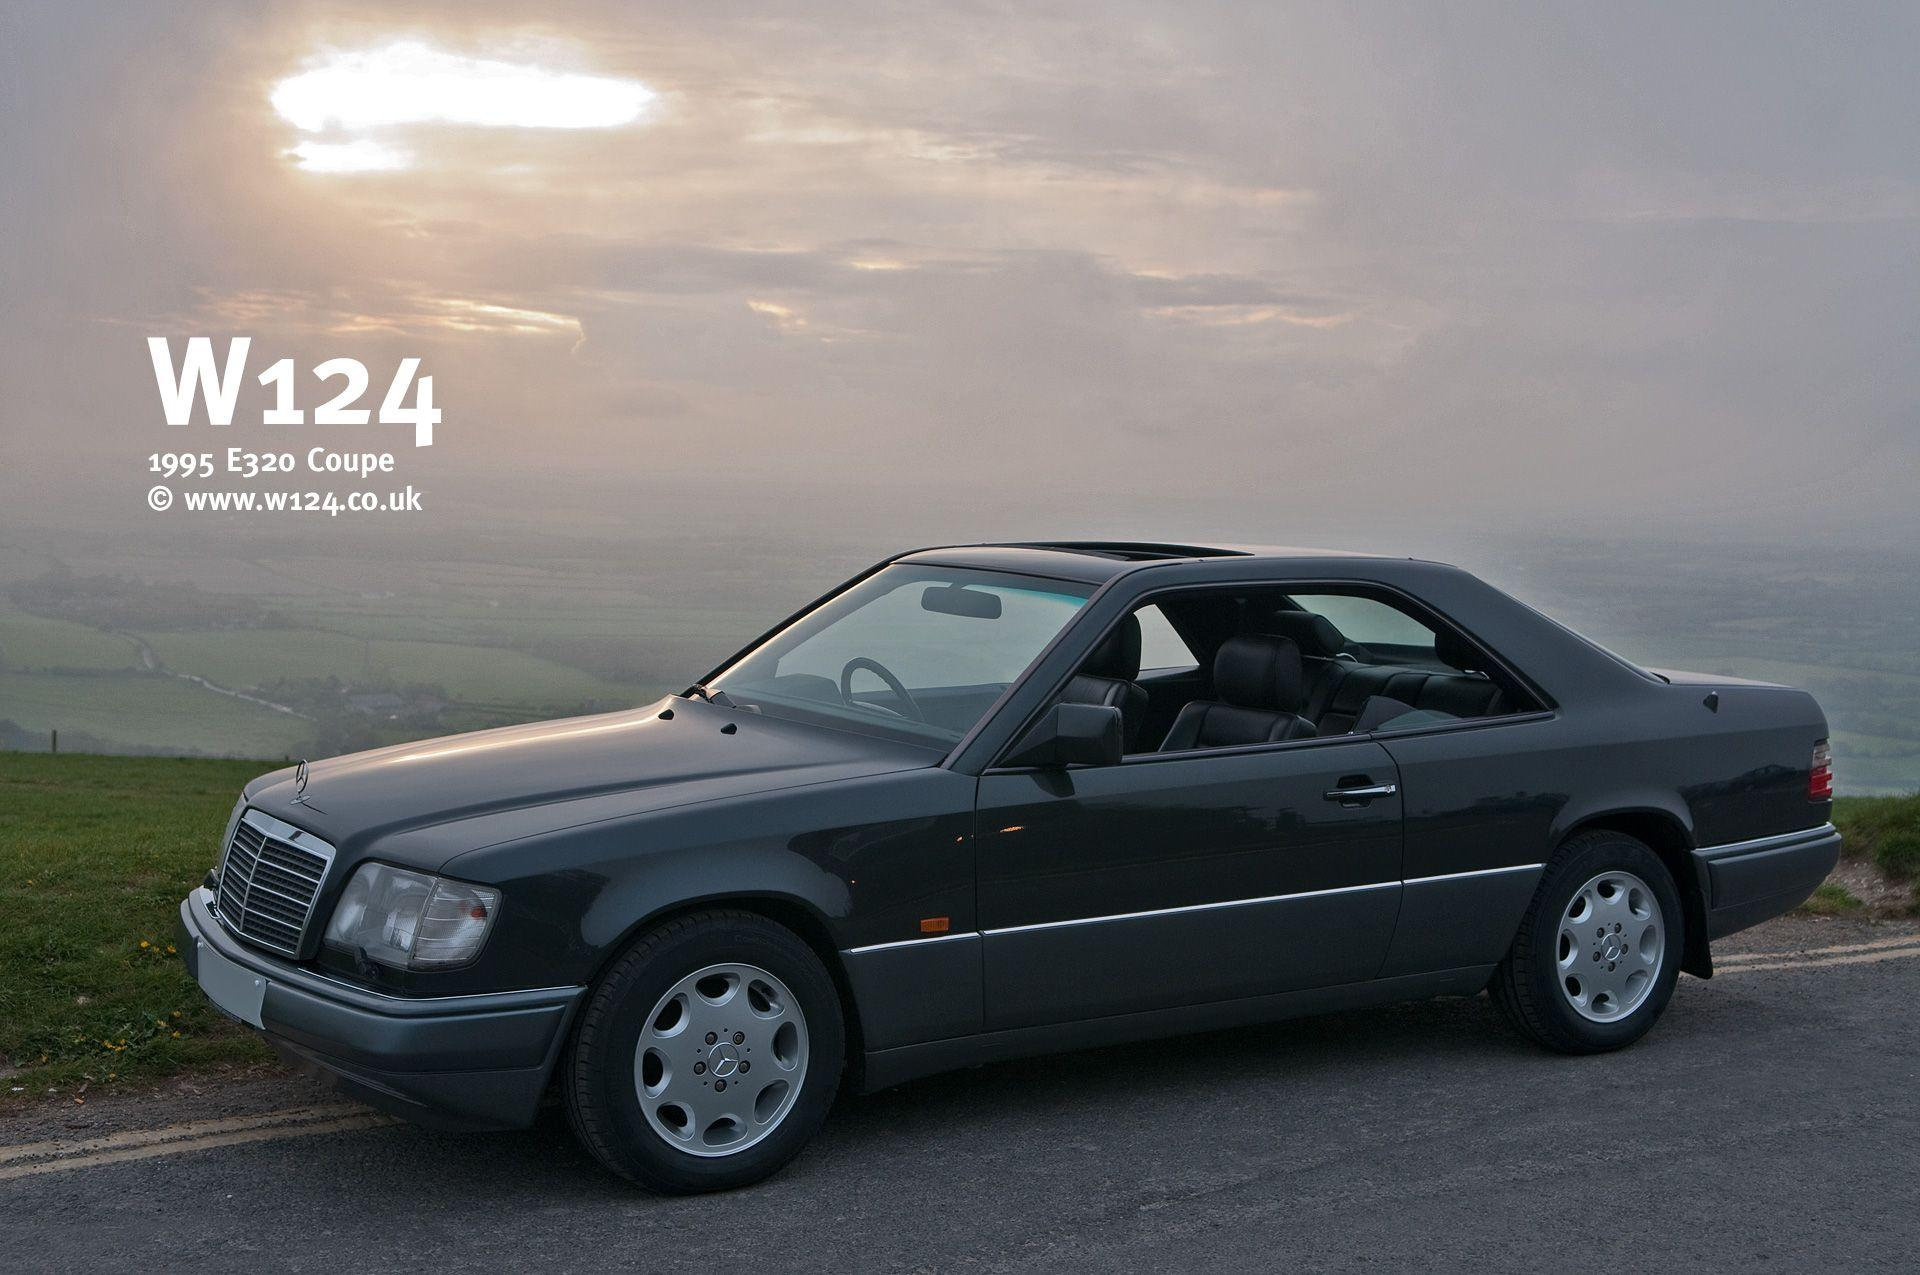 W124 Wallpapers Wallpaper Cave